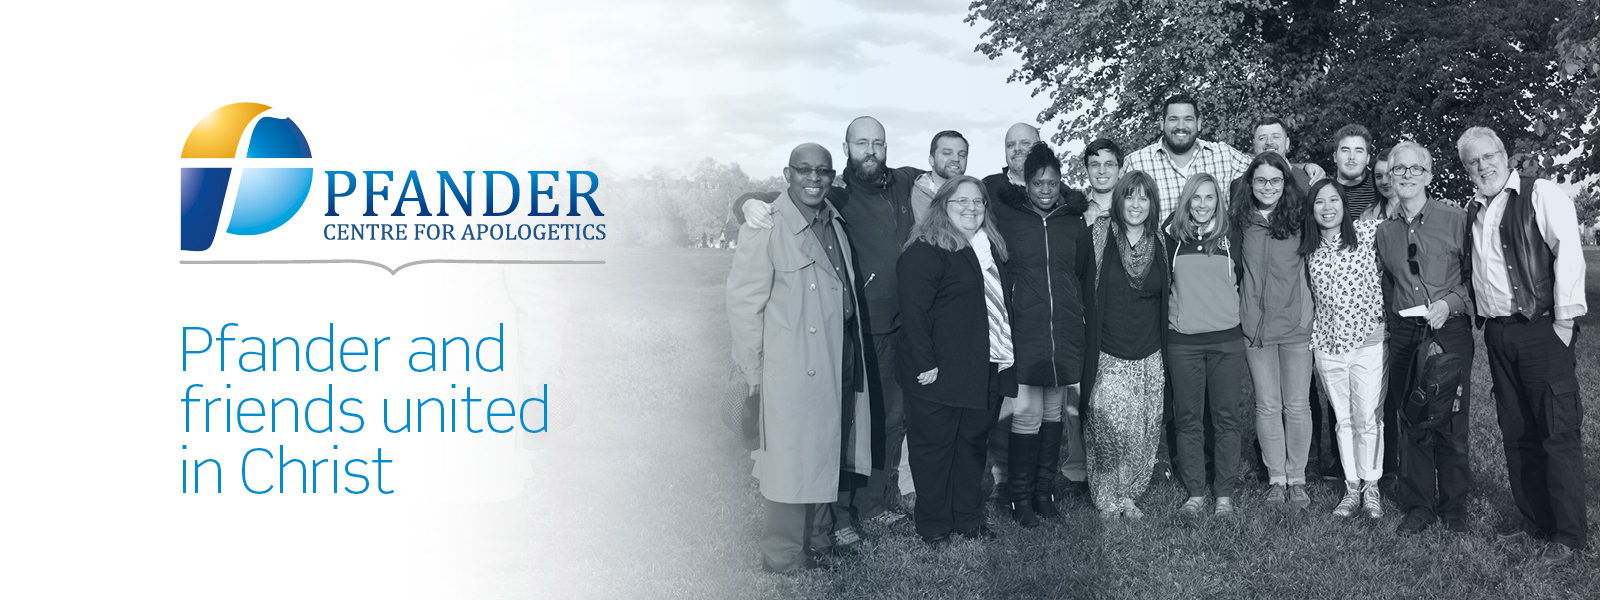 Pfander and friends united in Christ